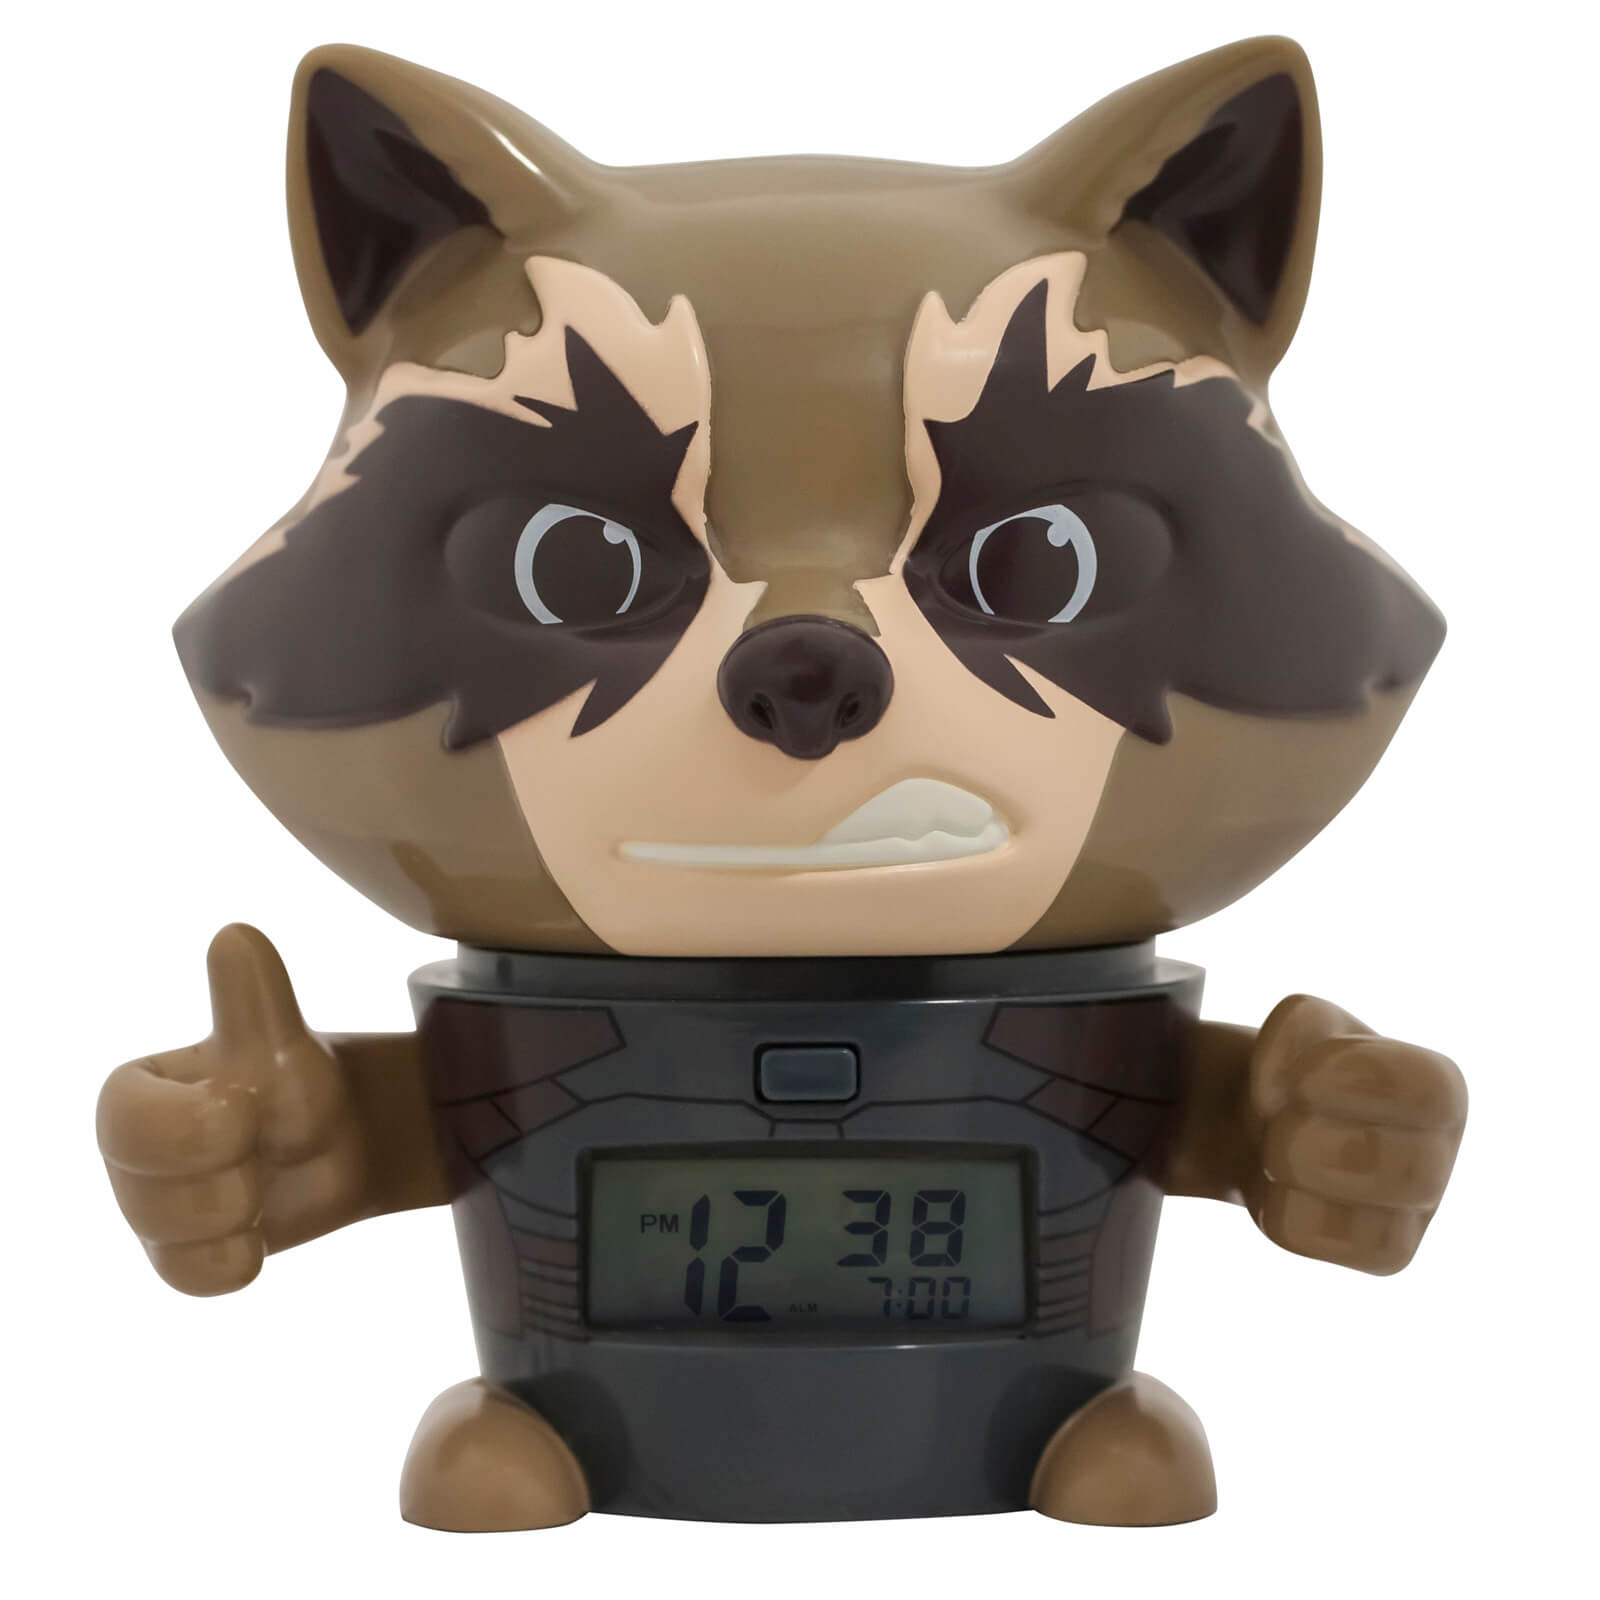 Bulbbotz Marvel The Avengers: Infinity War Rocket Raccoon Clock (5.5 inches)